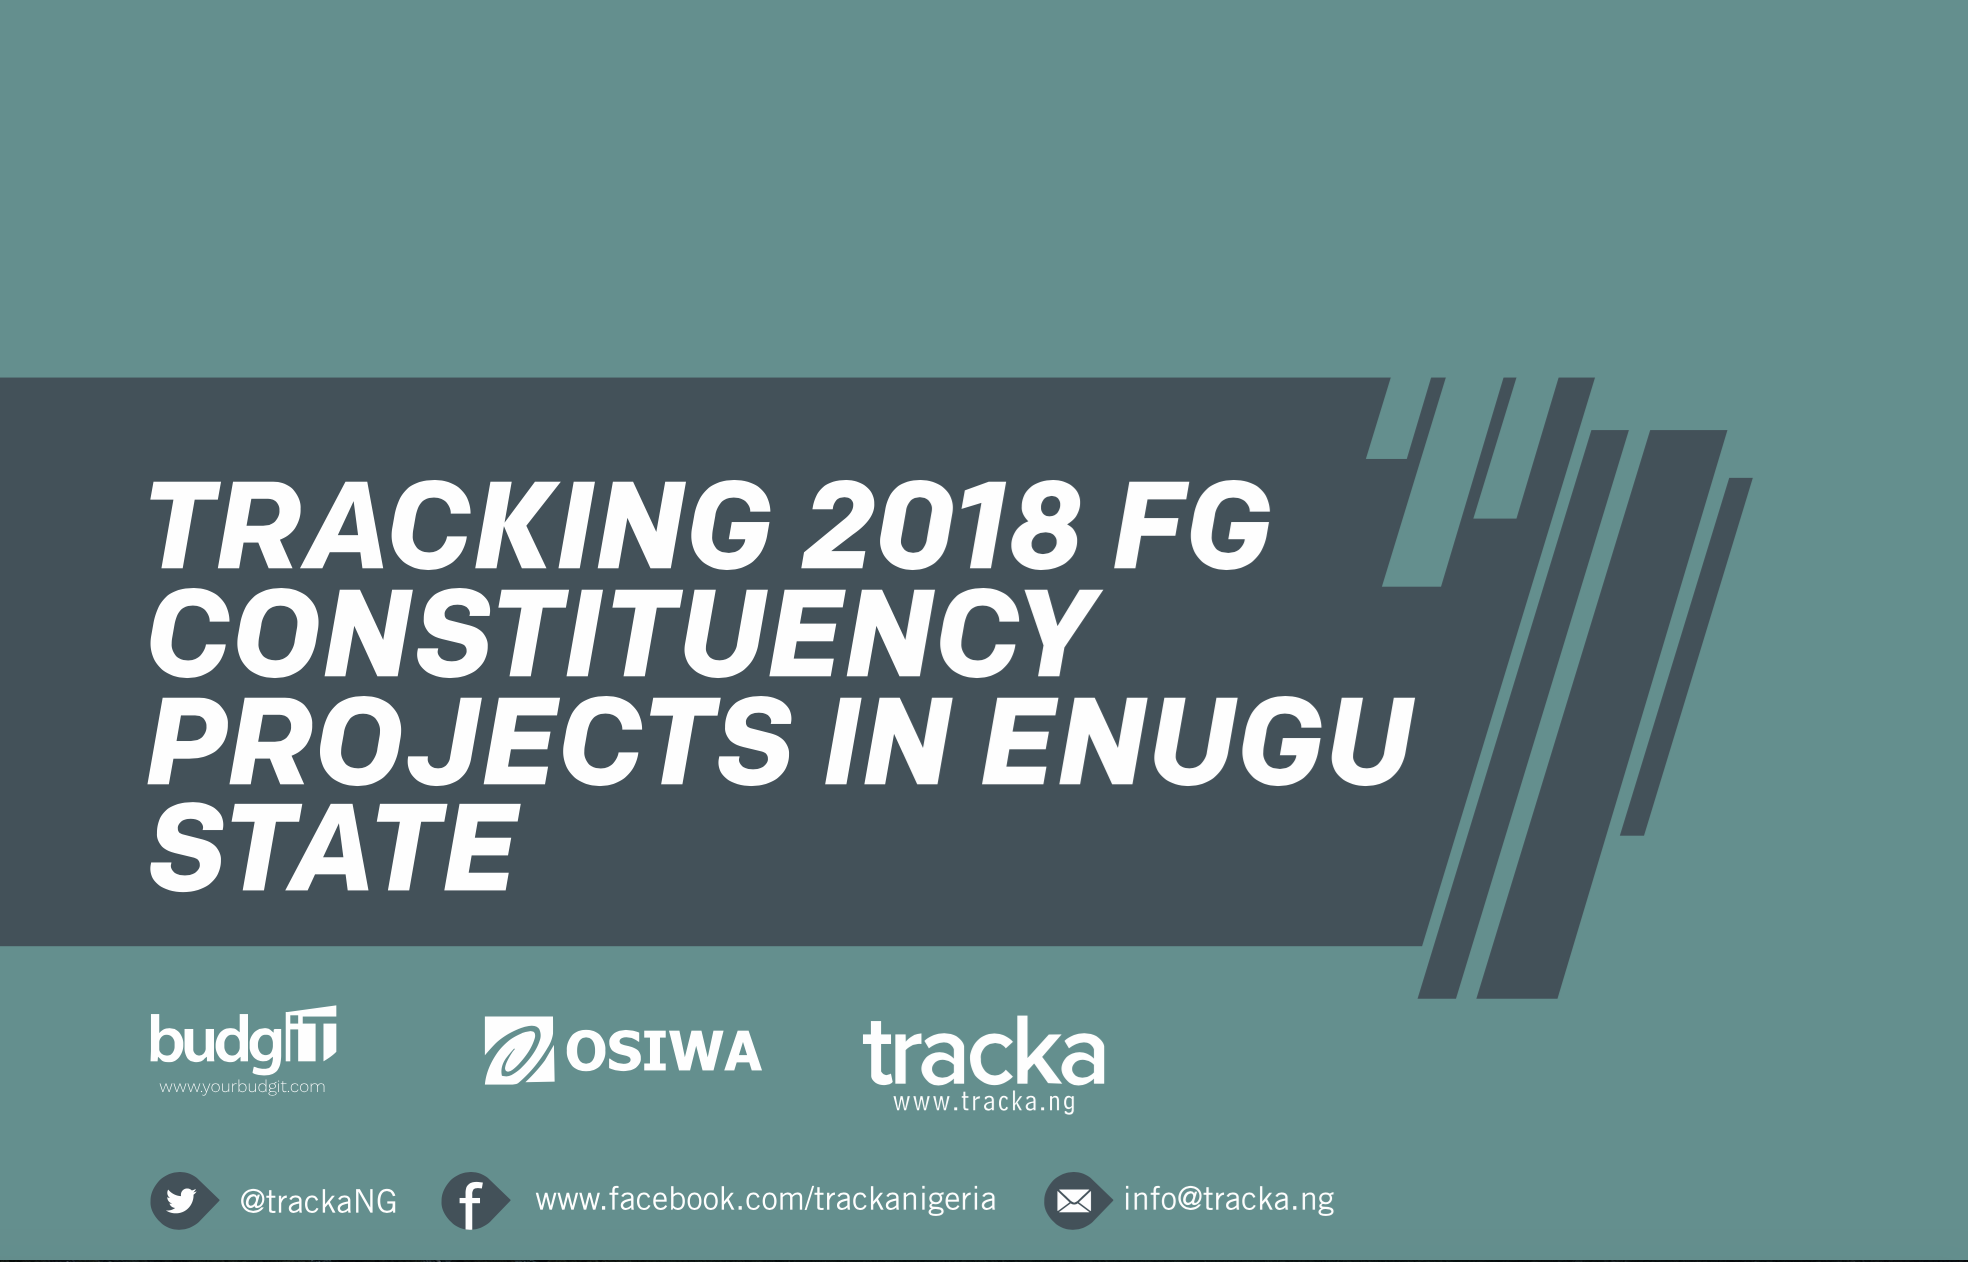 2018 FG Constituency Projects in Enugu State